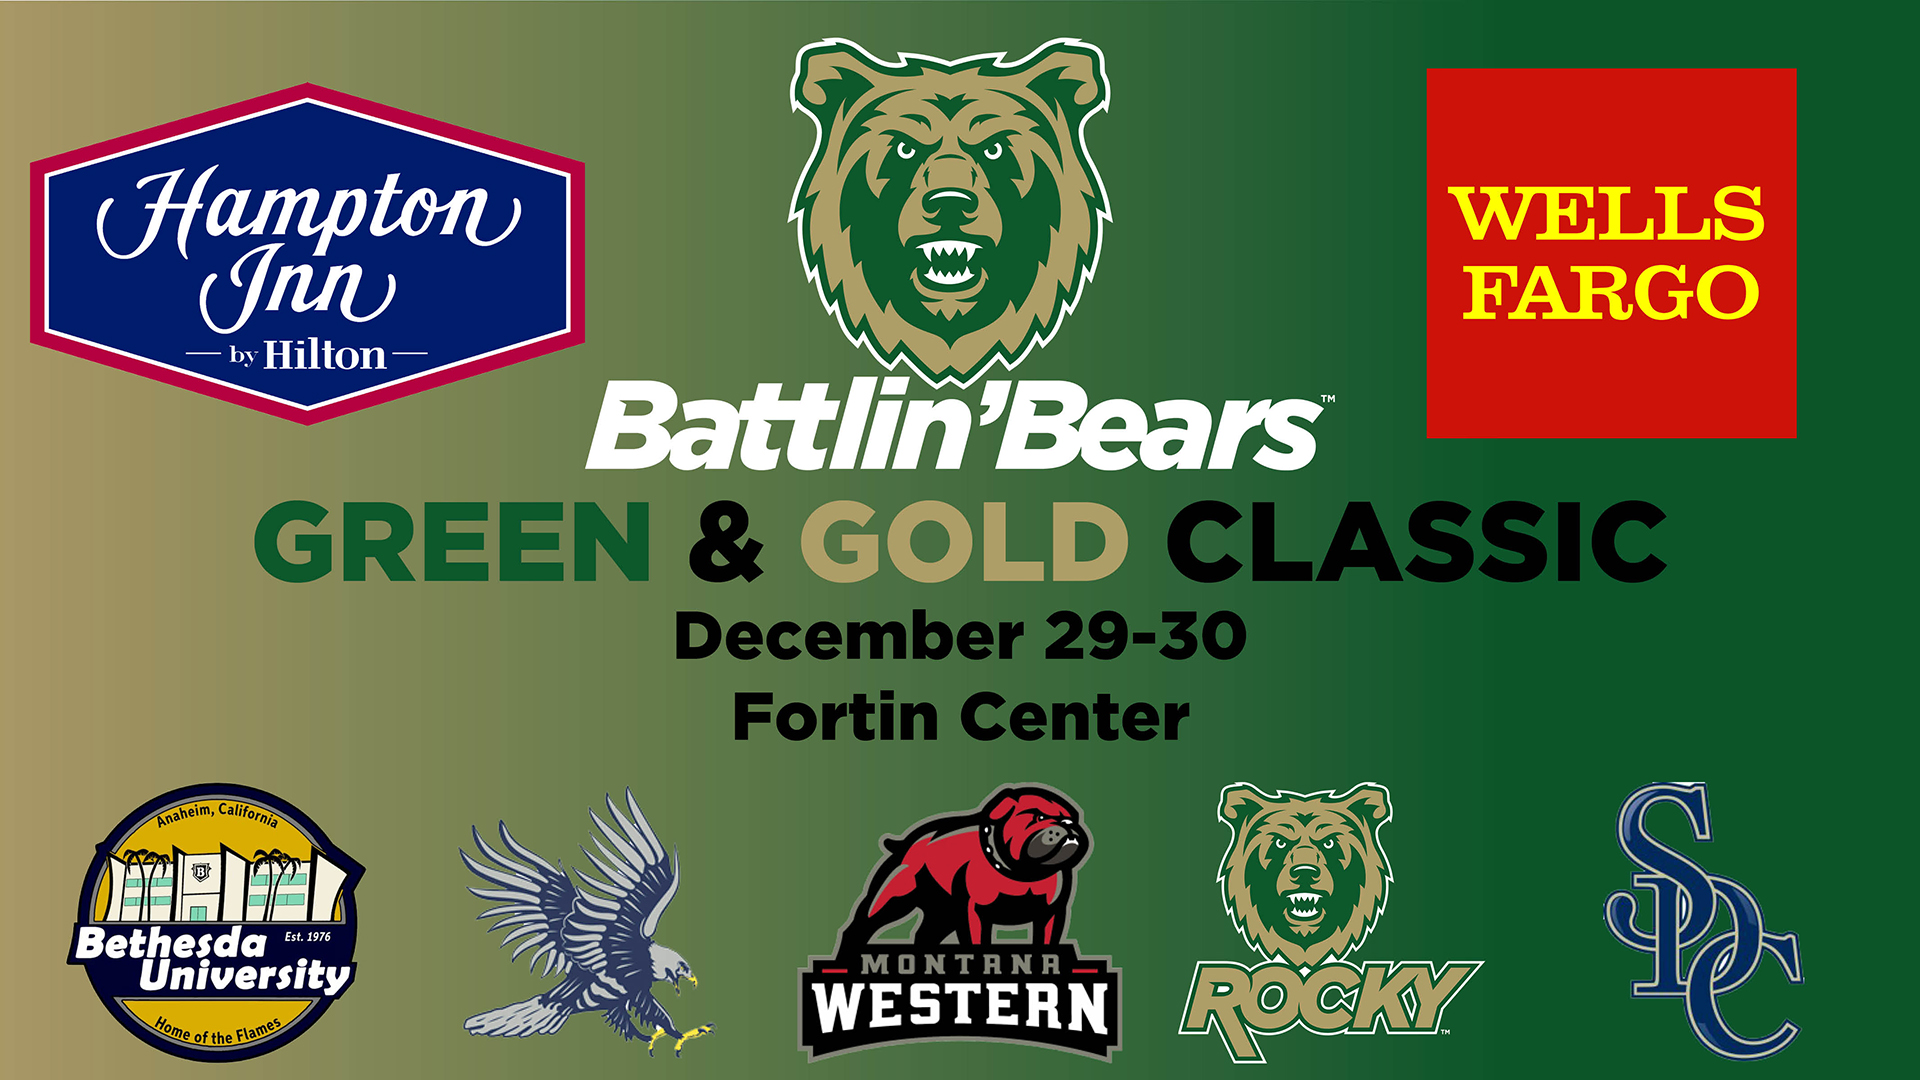 Changes Made To Hampton Inn Wells Fargo Green Gold Classic